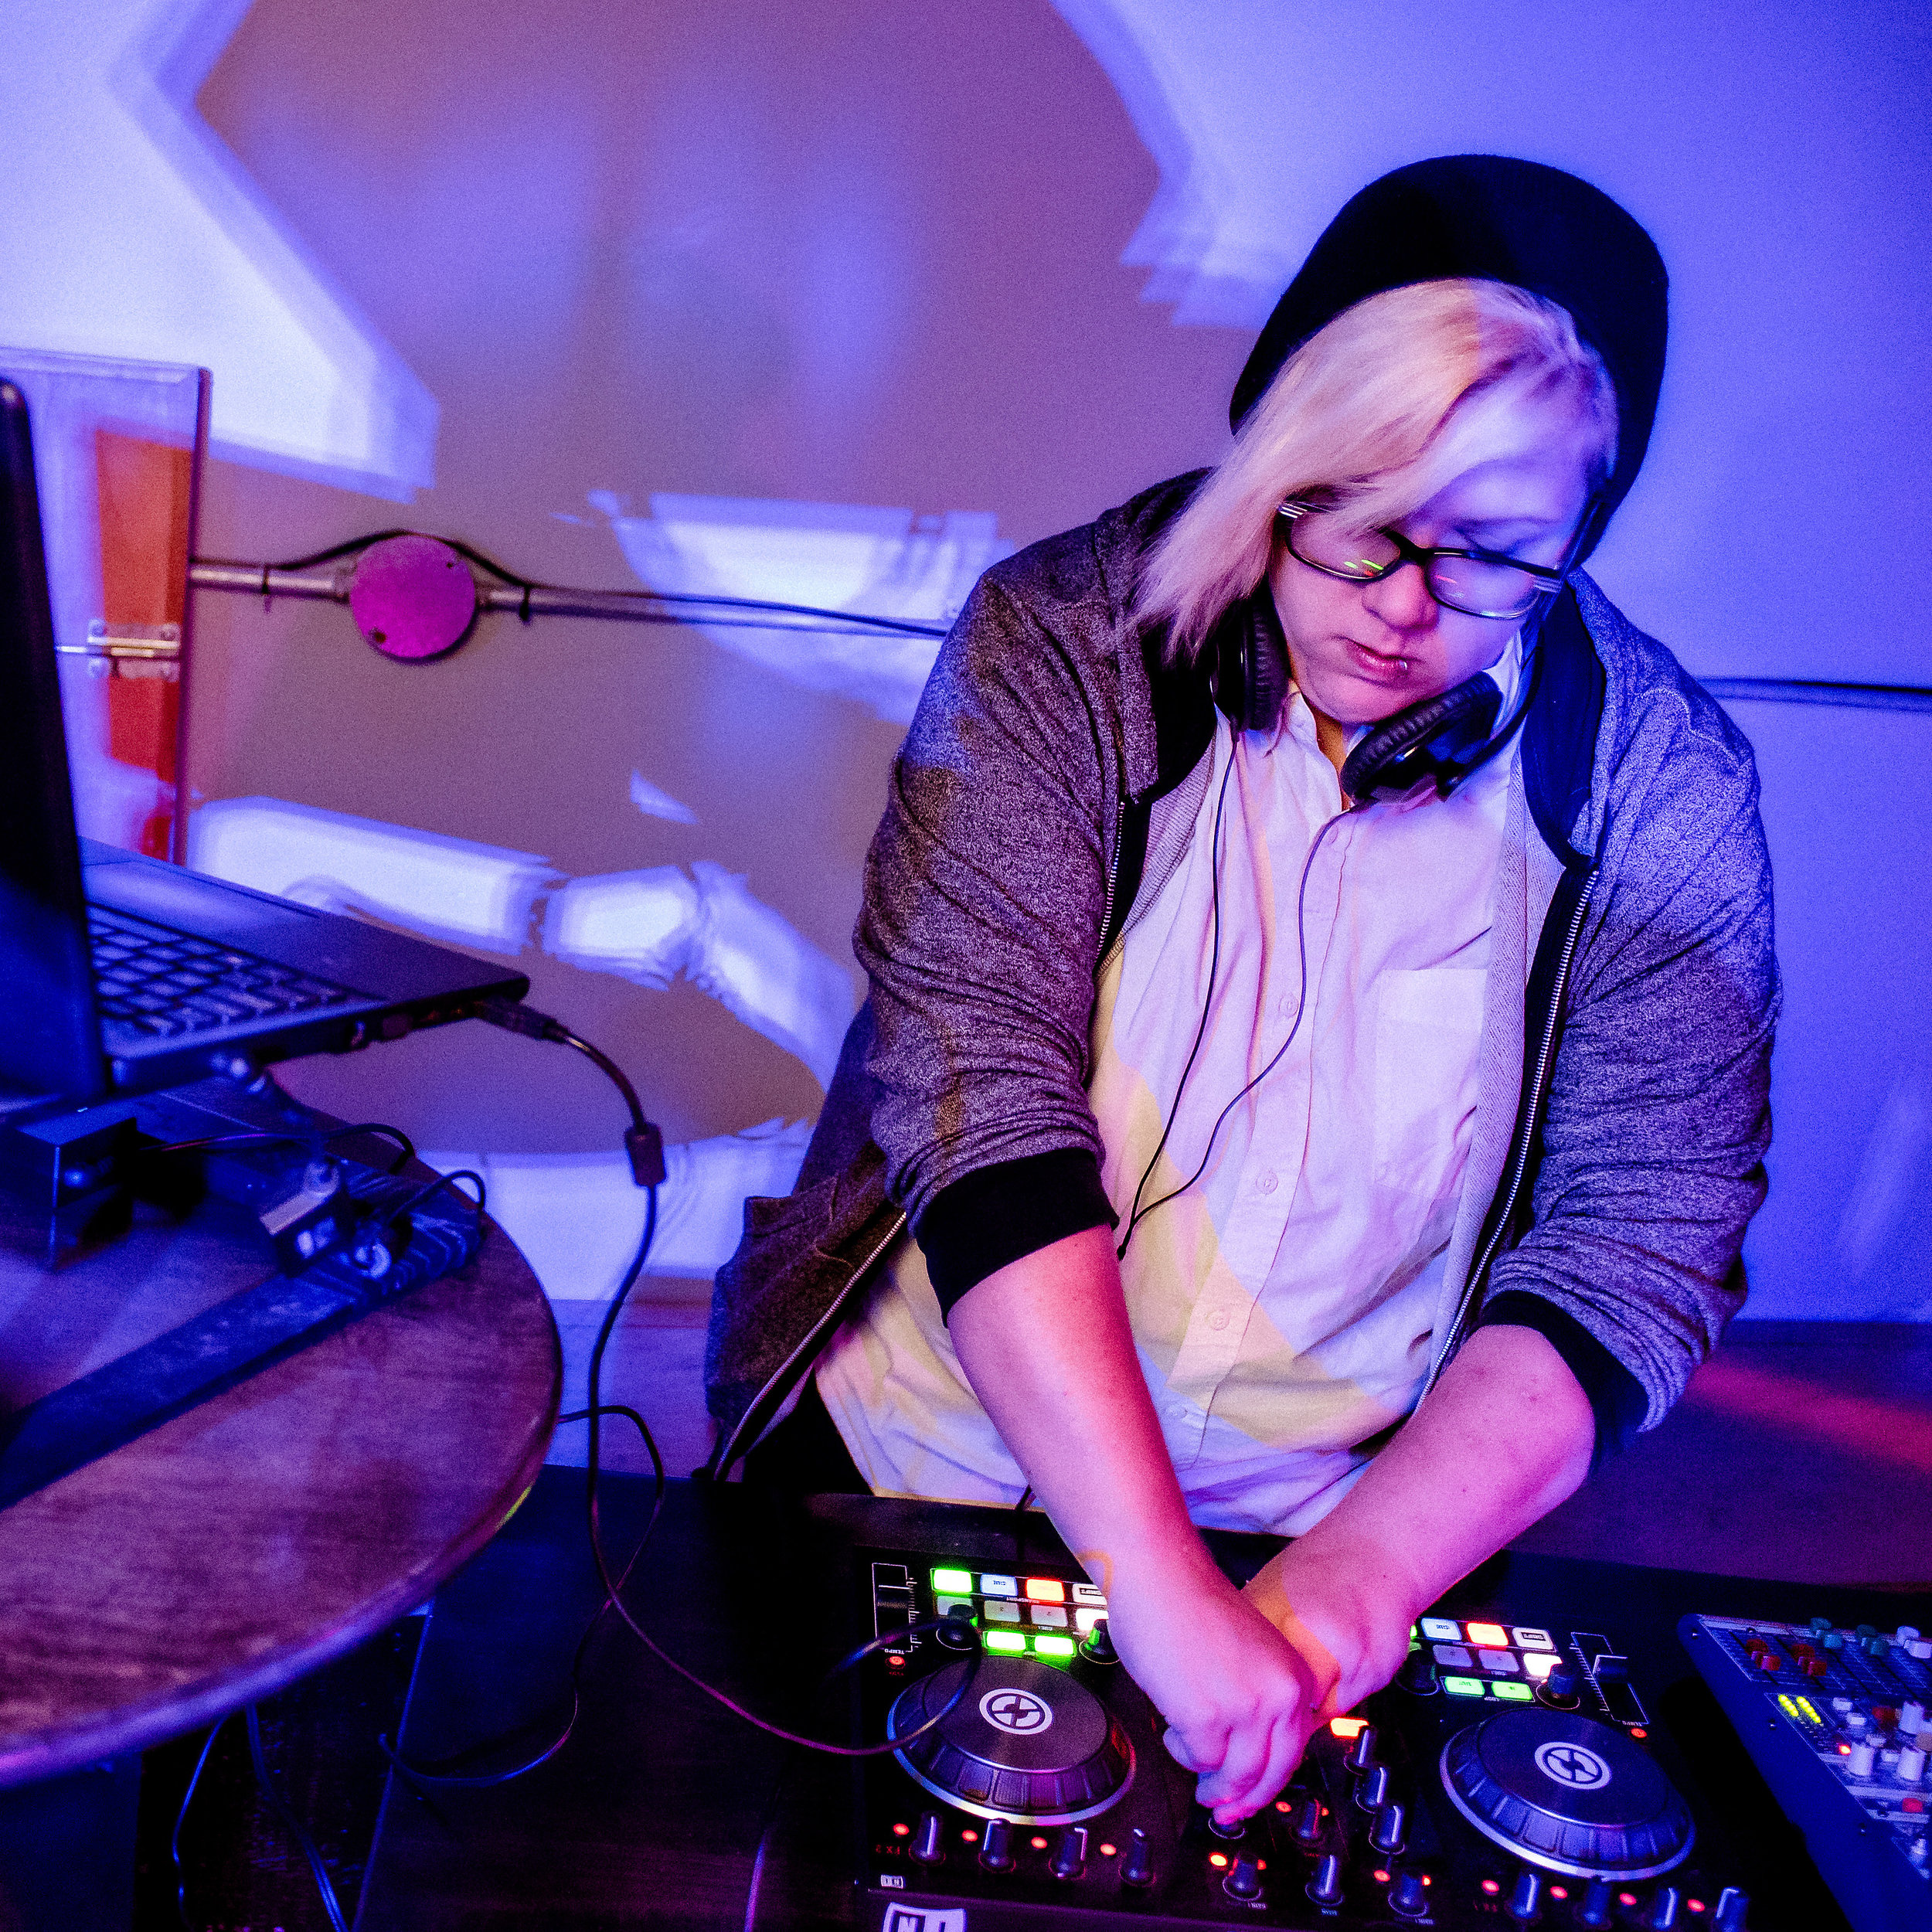 M'Damn D - session 1    https://www.mixcloud.com/madamd   Your genre blending, gender bending DJ, spinning all walks of bass! Co-founder and resident DJ of FIERCE (Guelph's only regular queer+ event), M'Damn D has been organizing/DJing all kinds of events over the past 10 years, from Burlesque shows to club nights to festivals. What to expect? A little bit of everything! Soul, funk, house and all that good stuff in between, with sprinkles of nostalgia to keep you boogieing all night long. Requests and respect always welcome.